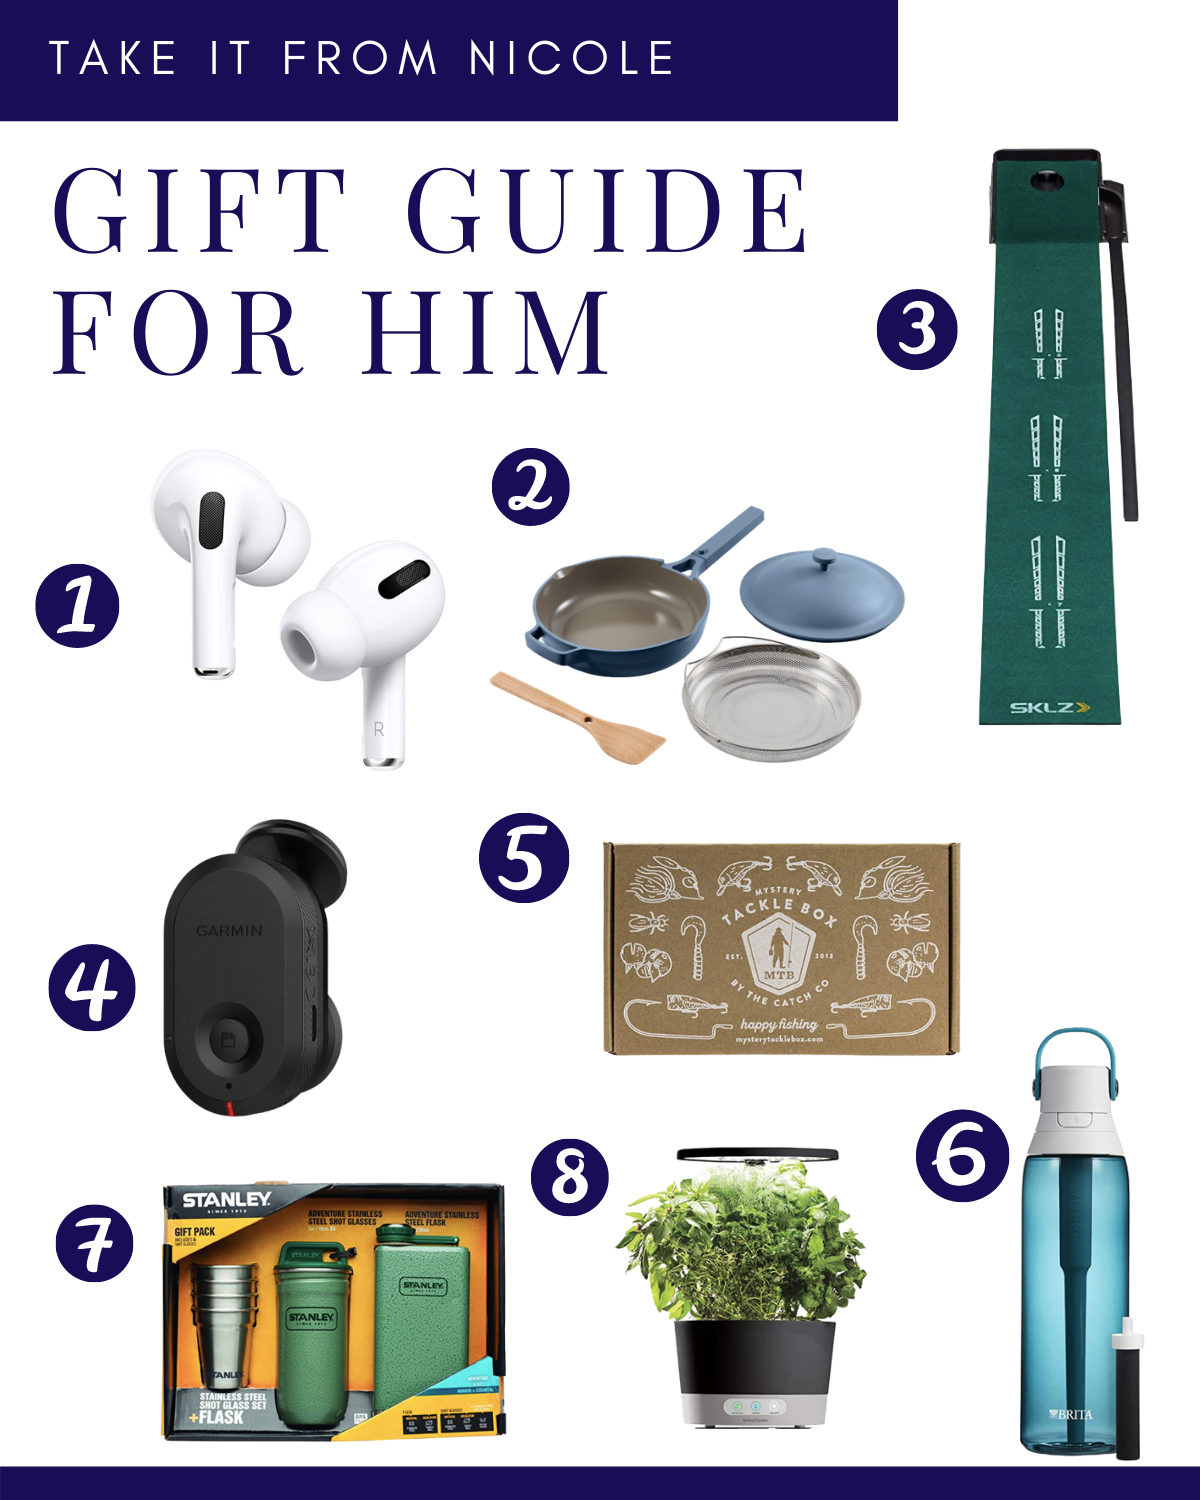 Here is my Gift Guide for Men! Shopping for men is HARD. I have the hardest time shopping for my husband and father. Hopefully I can give you a few ideas to make it a little easier for you. I tried to cover a variety of interests from fishing to golf, from cooking to gardening.